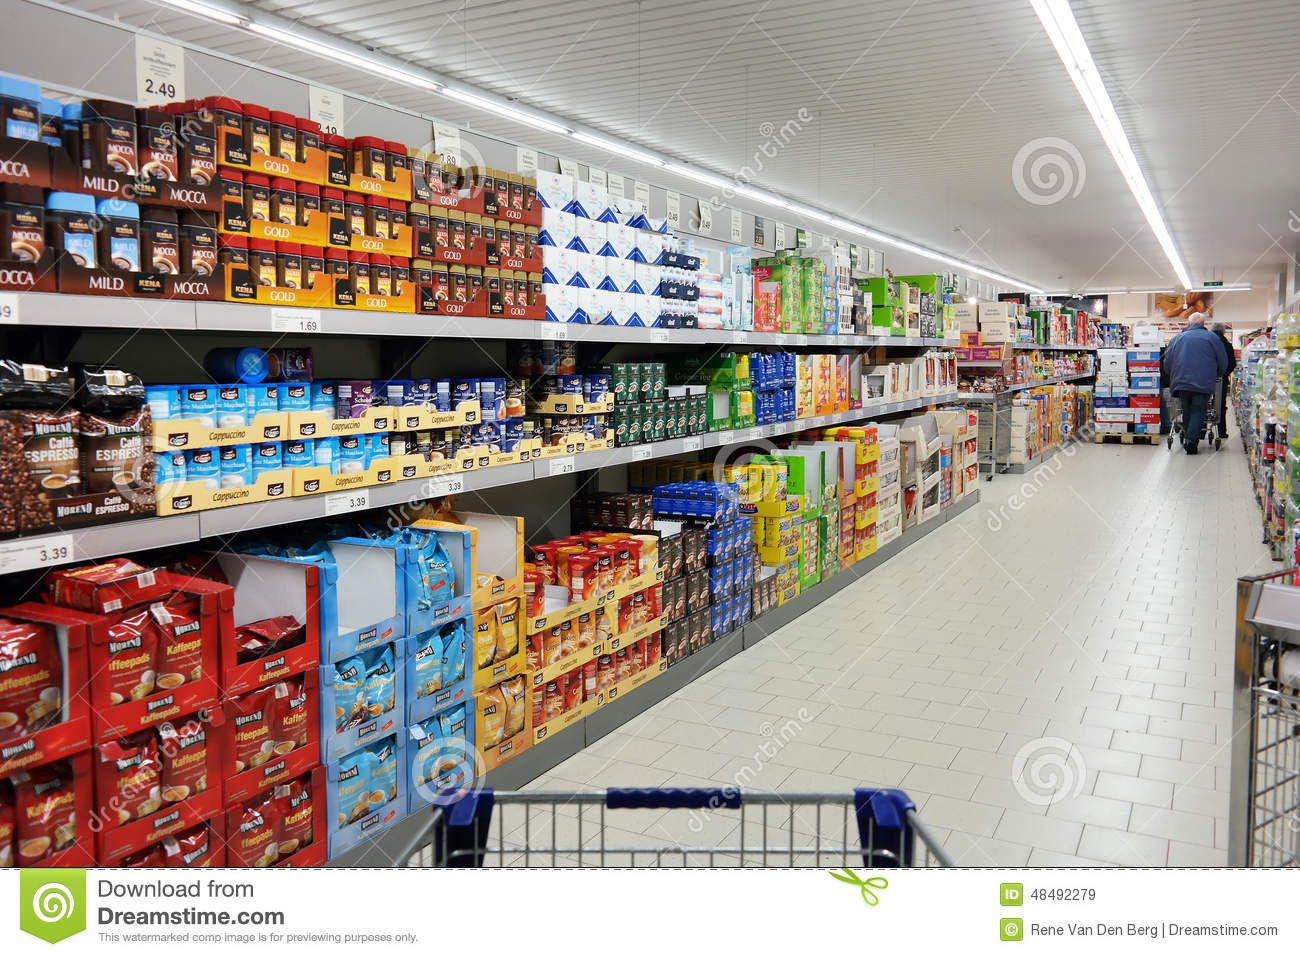 Aldi stock photos royalty free pictures aldi supermarket germany december 2014 shelves with a variety of coffee products in biocorpaavc